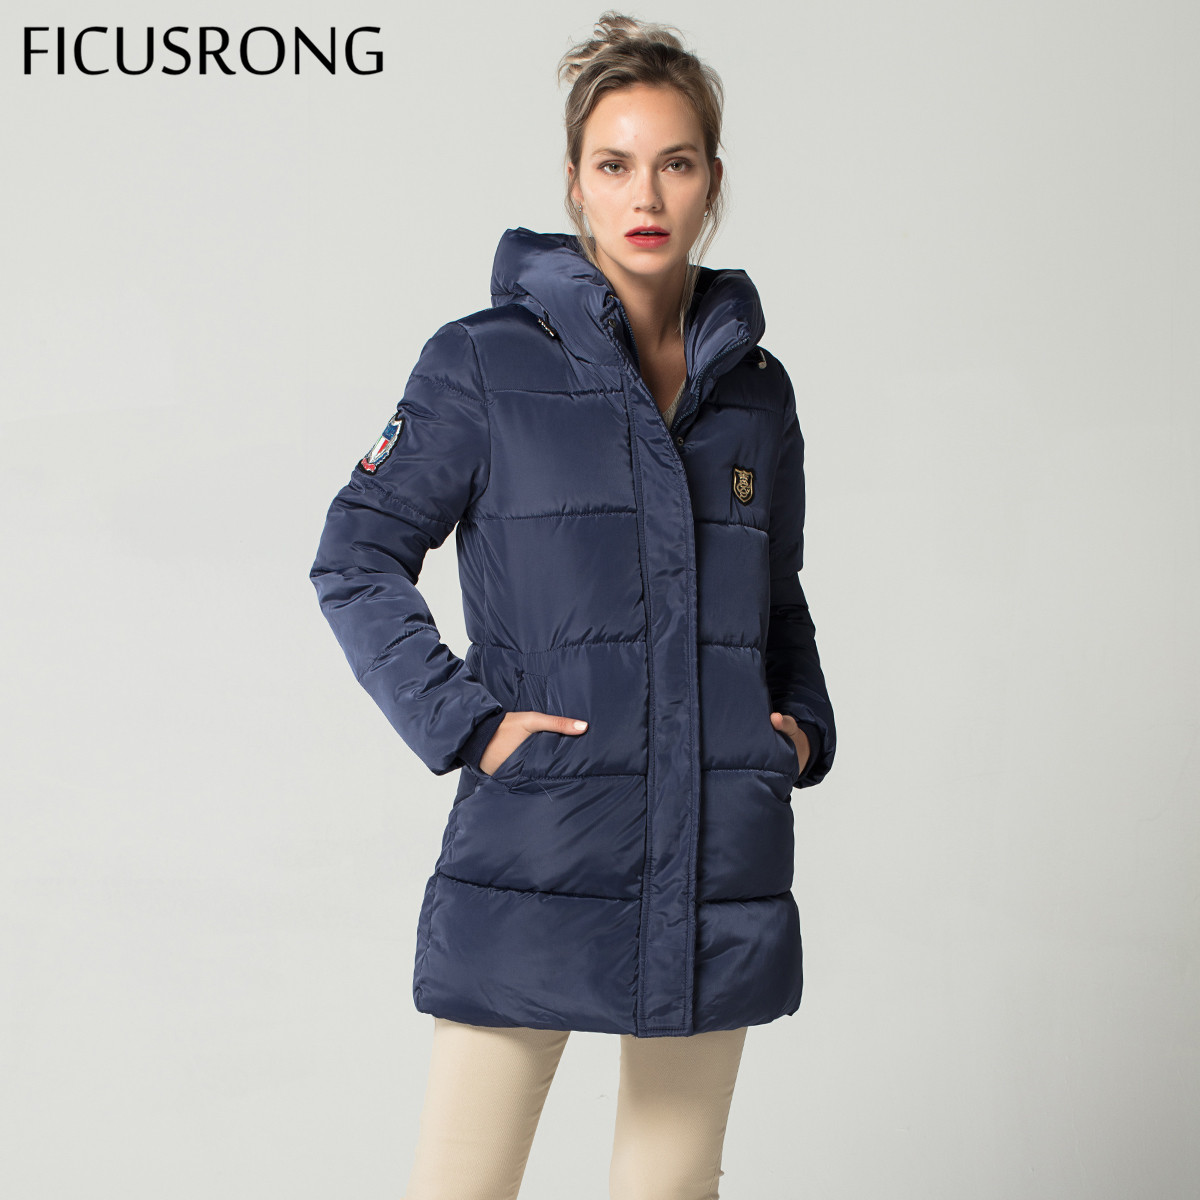 Long Down   Parkas   Female Women Winter Coat Thick Warm Cotton Hooded Jacket Womens Outerwear   Parkas   for Women FICUSRONG